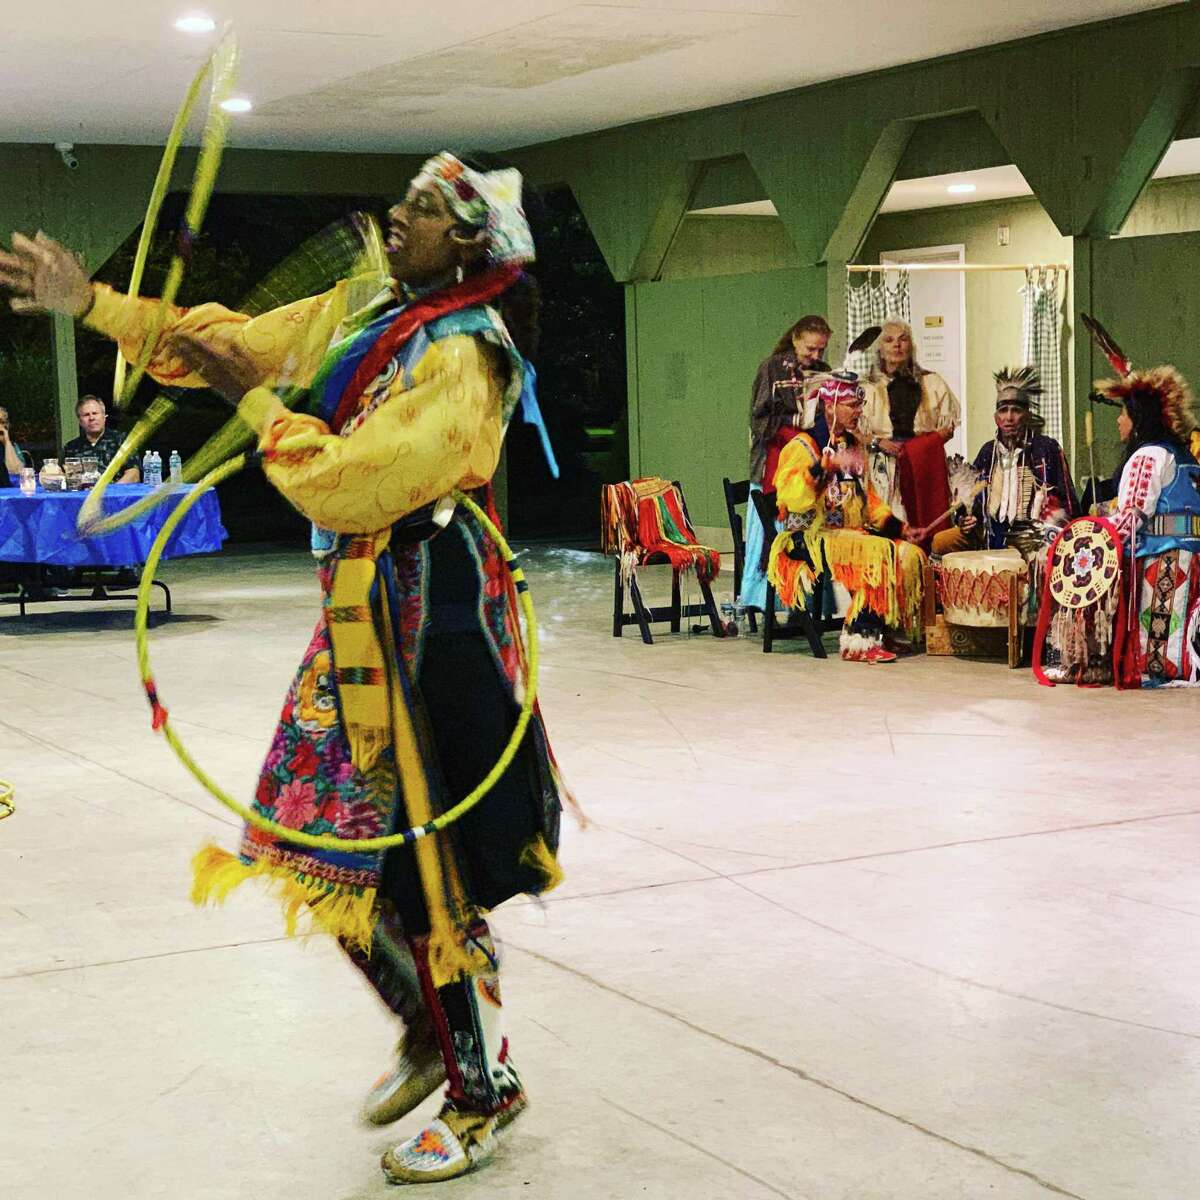 Every September the Institute for American Indian Studies hosts an al fresco traditional clambake, called From Earth to Sea. This year's event is set for Sept. 11. The clambake will also feature Native American dancing.